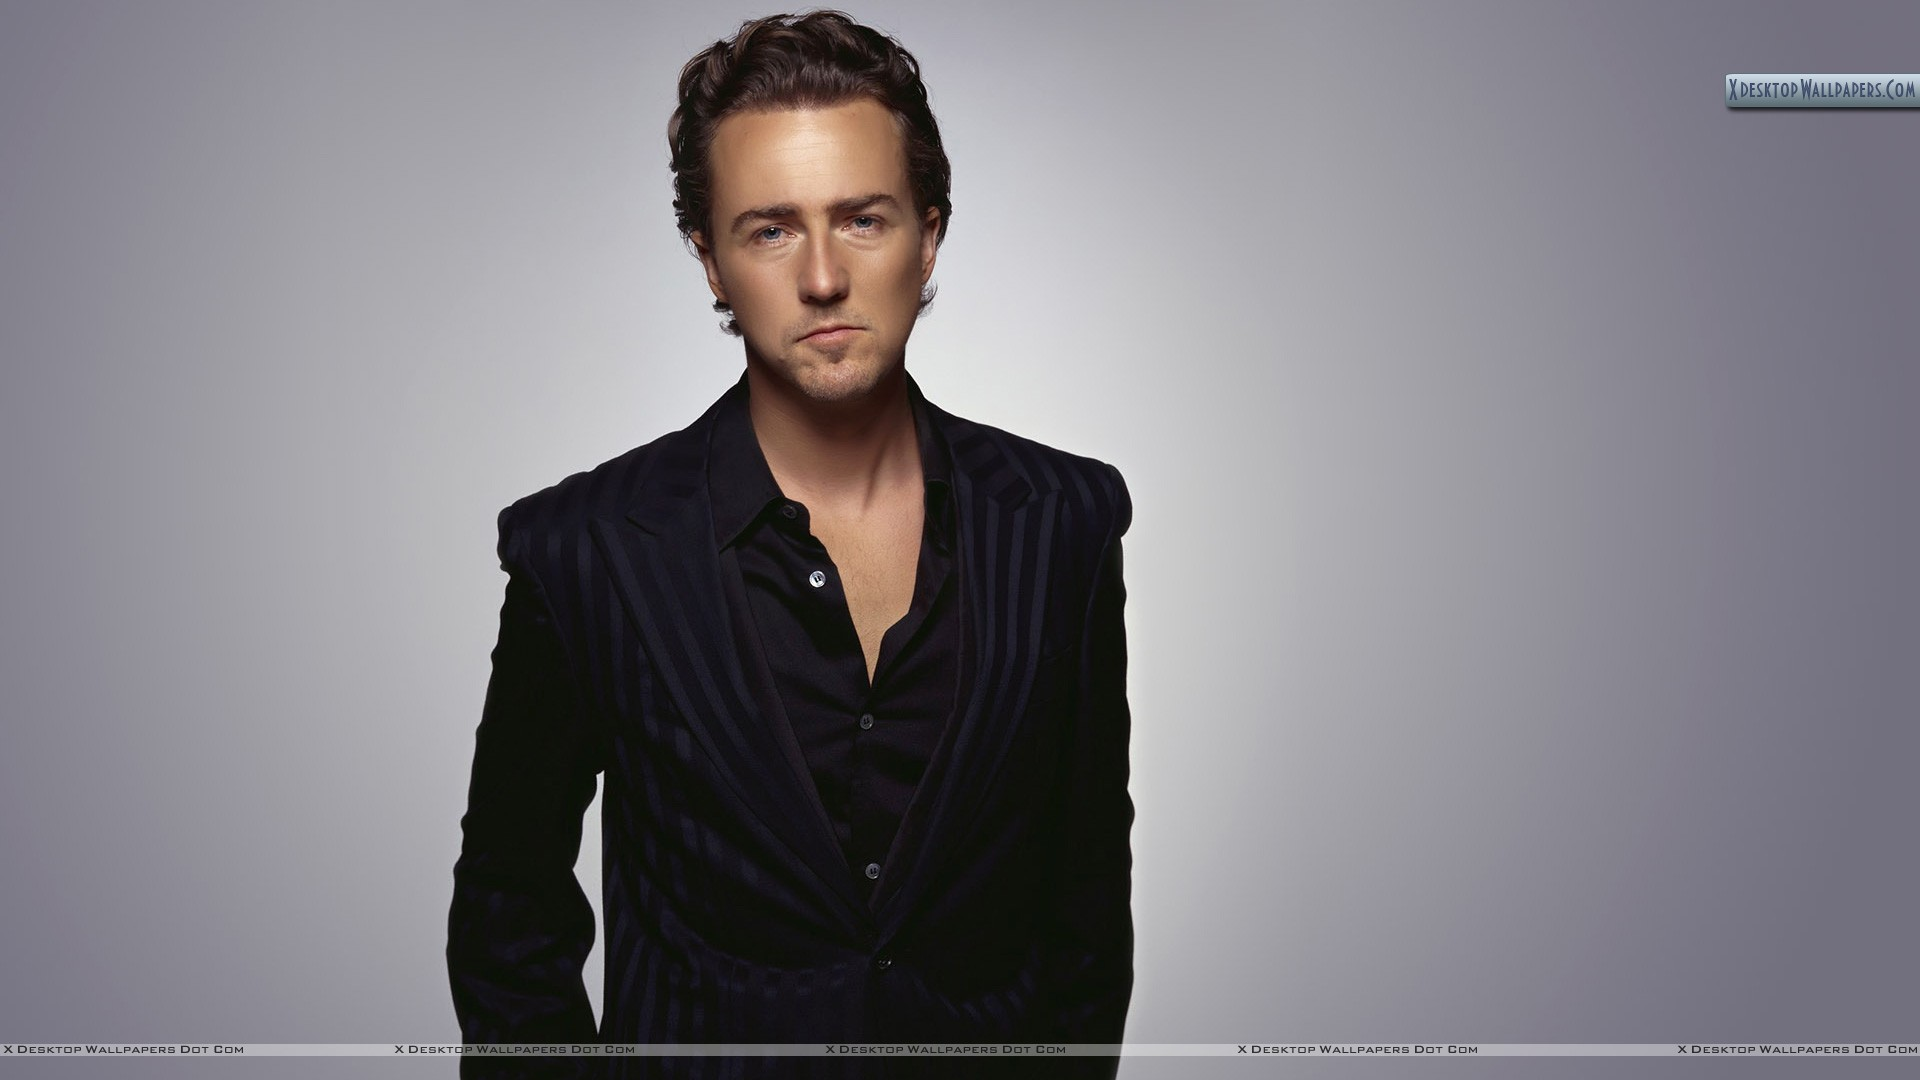 Edward Norton Wallpapers Photos Images in HD 1920x1080